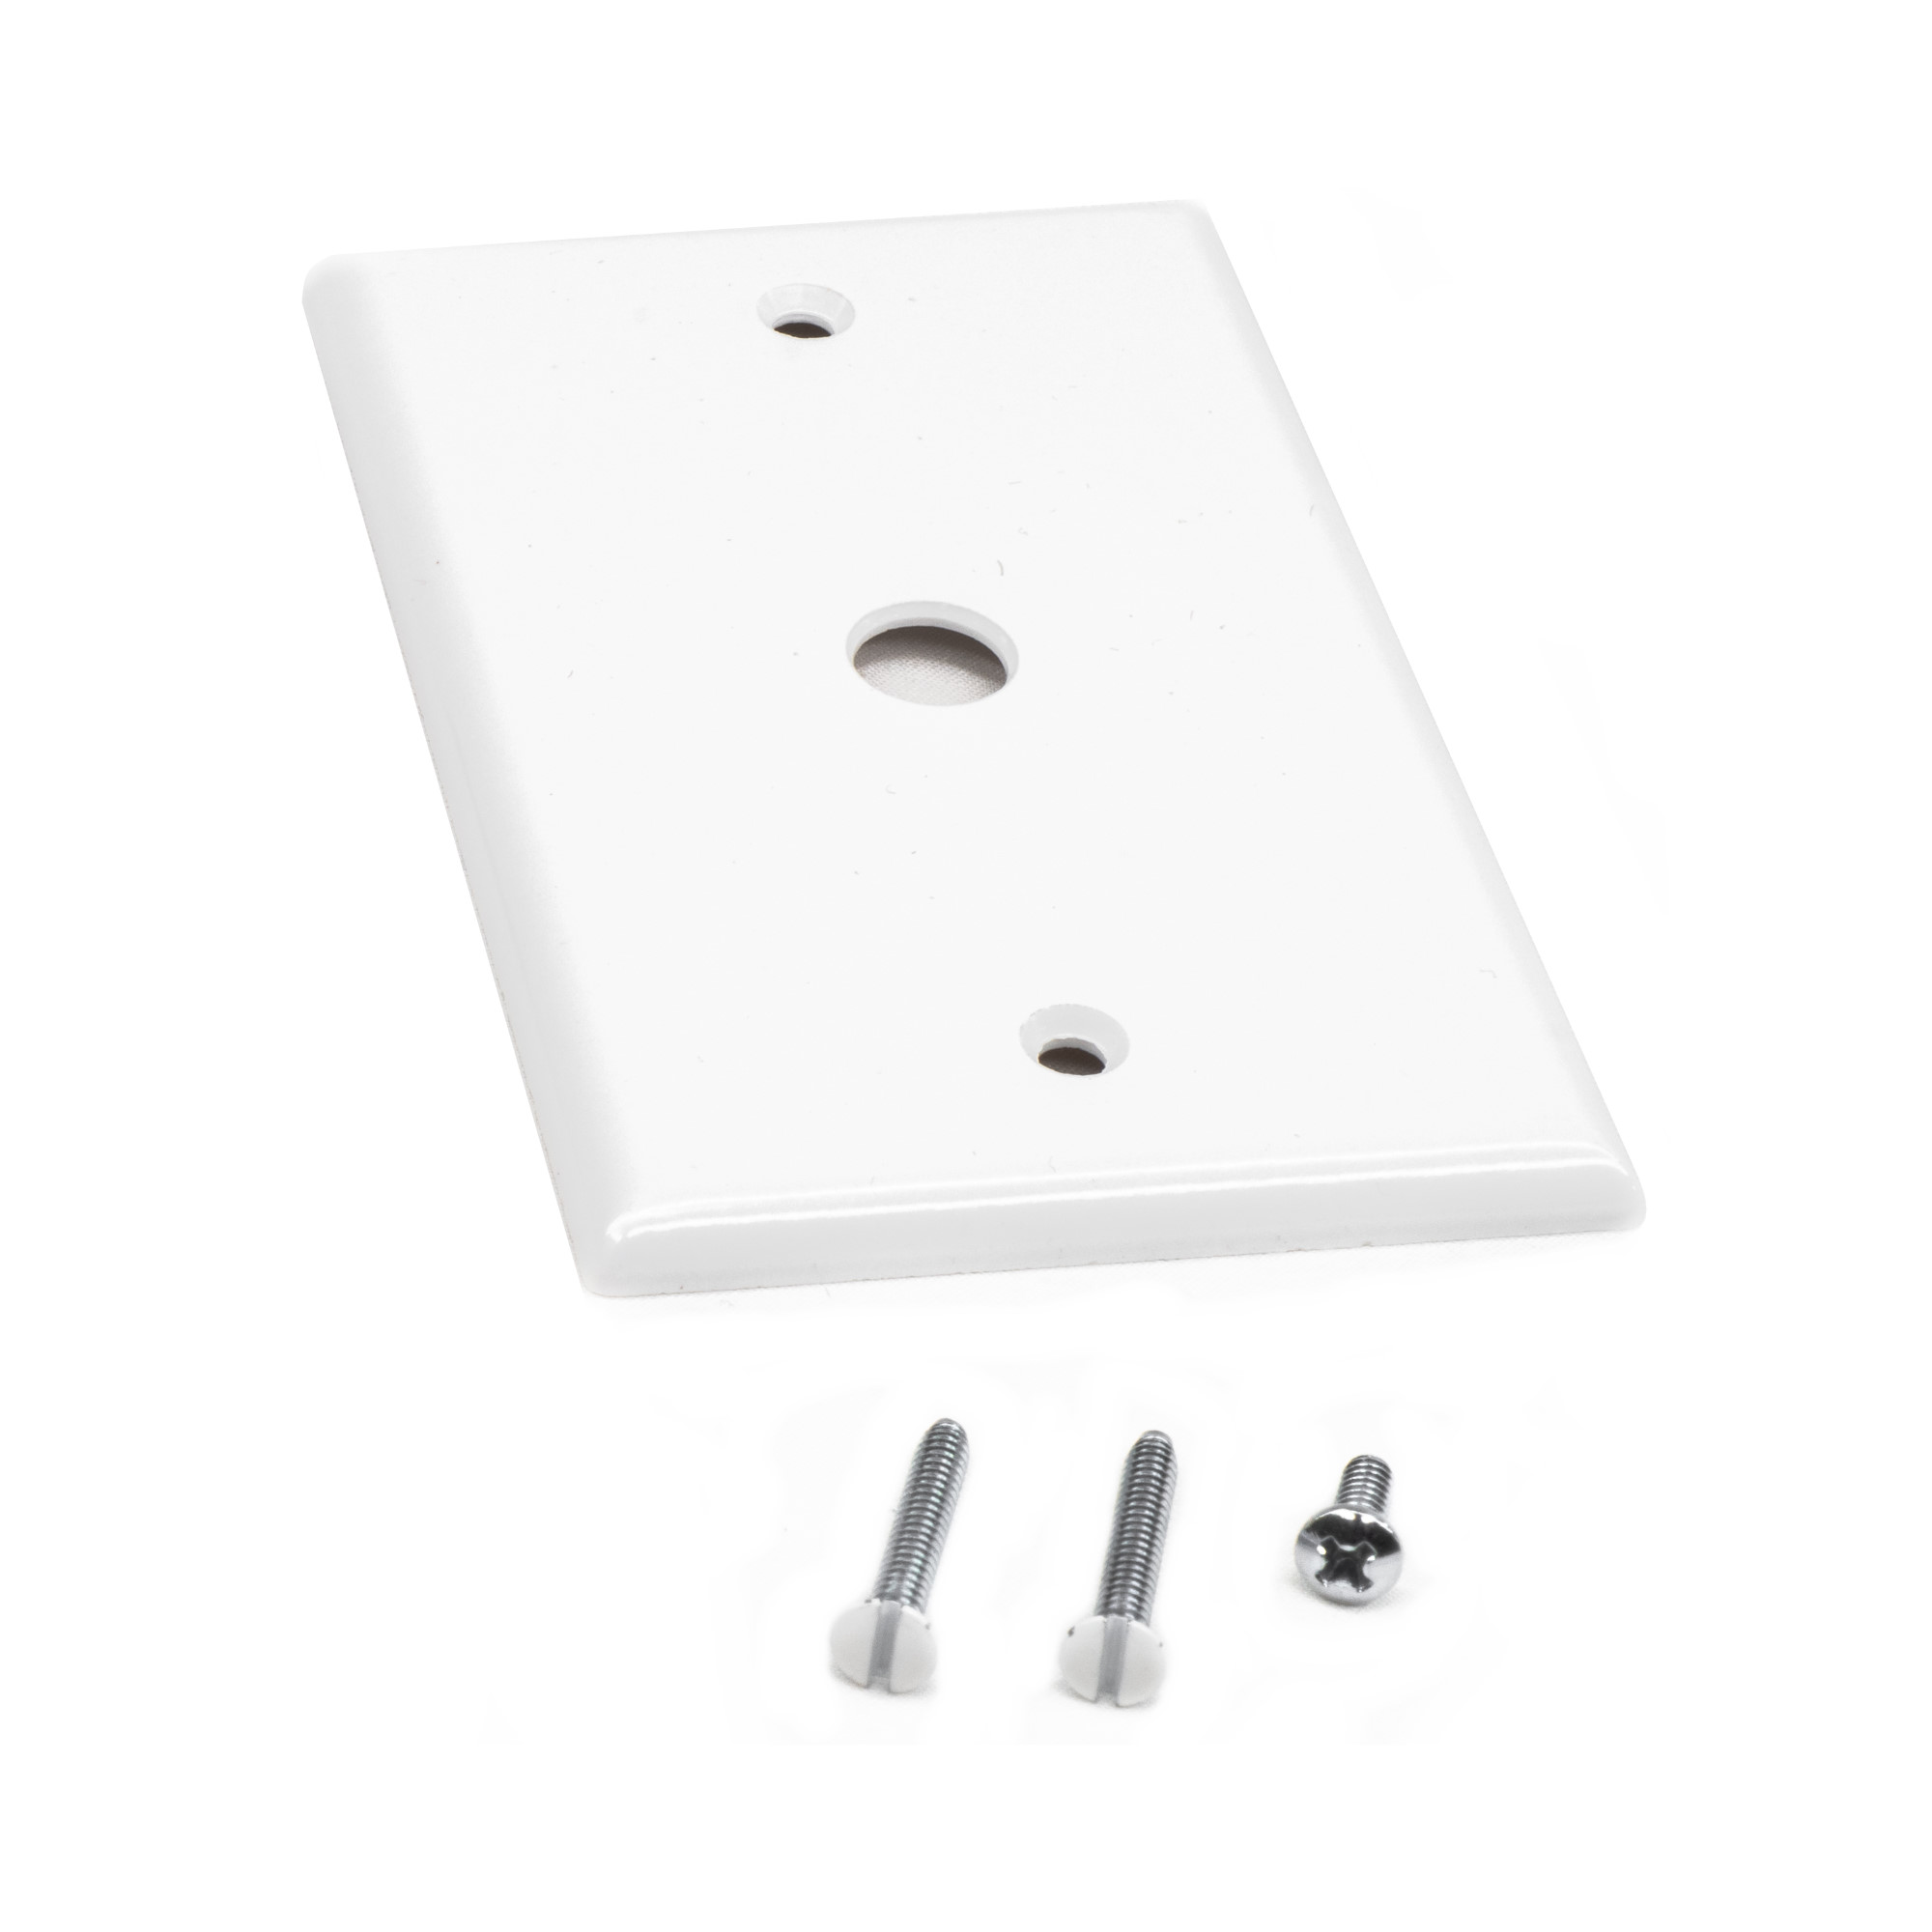 Single Gang Cover Plate w/ Hole for Wall Mount Variable Speed Controller